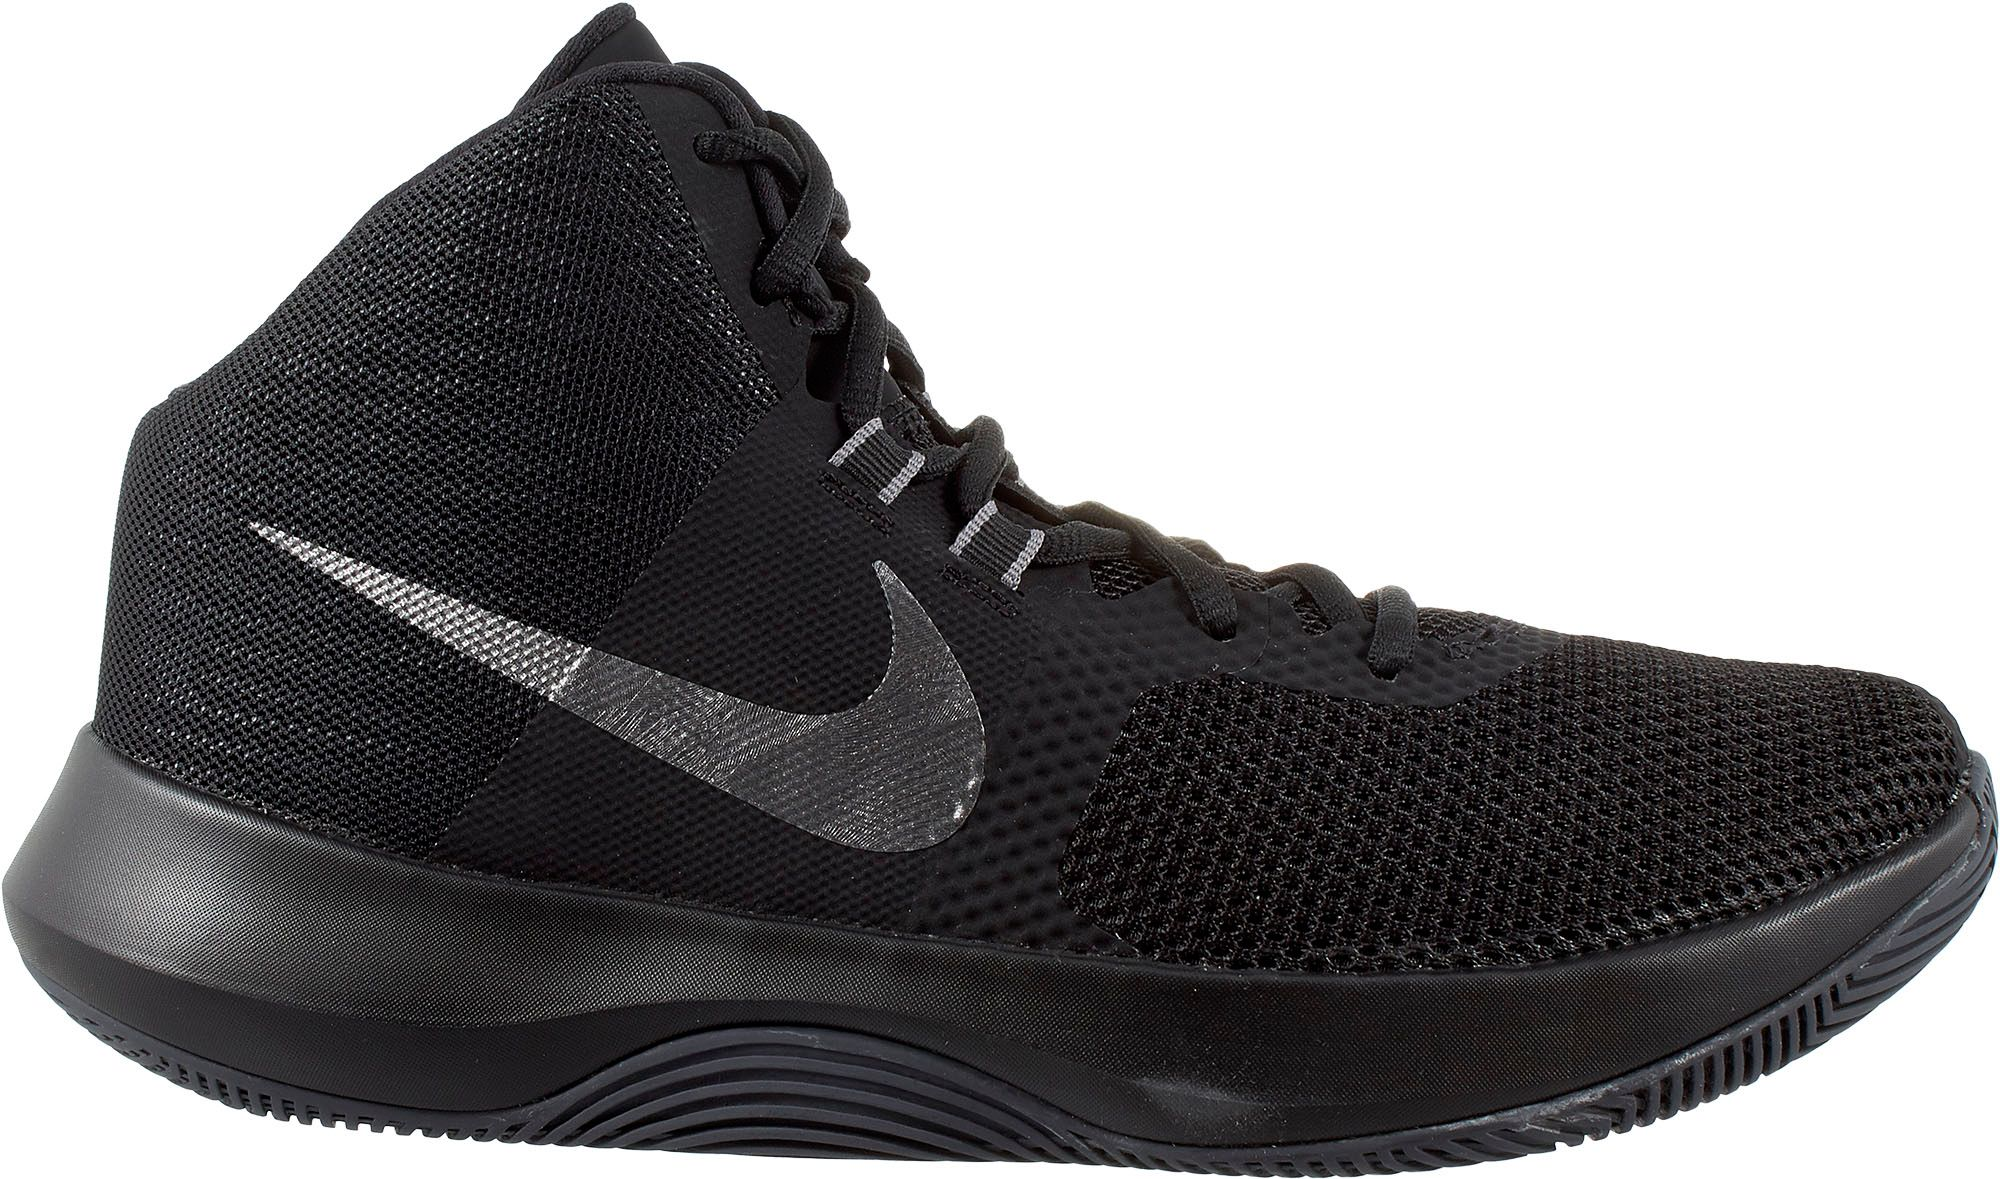 Best Bball Shoes For Wide Feet